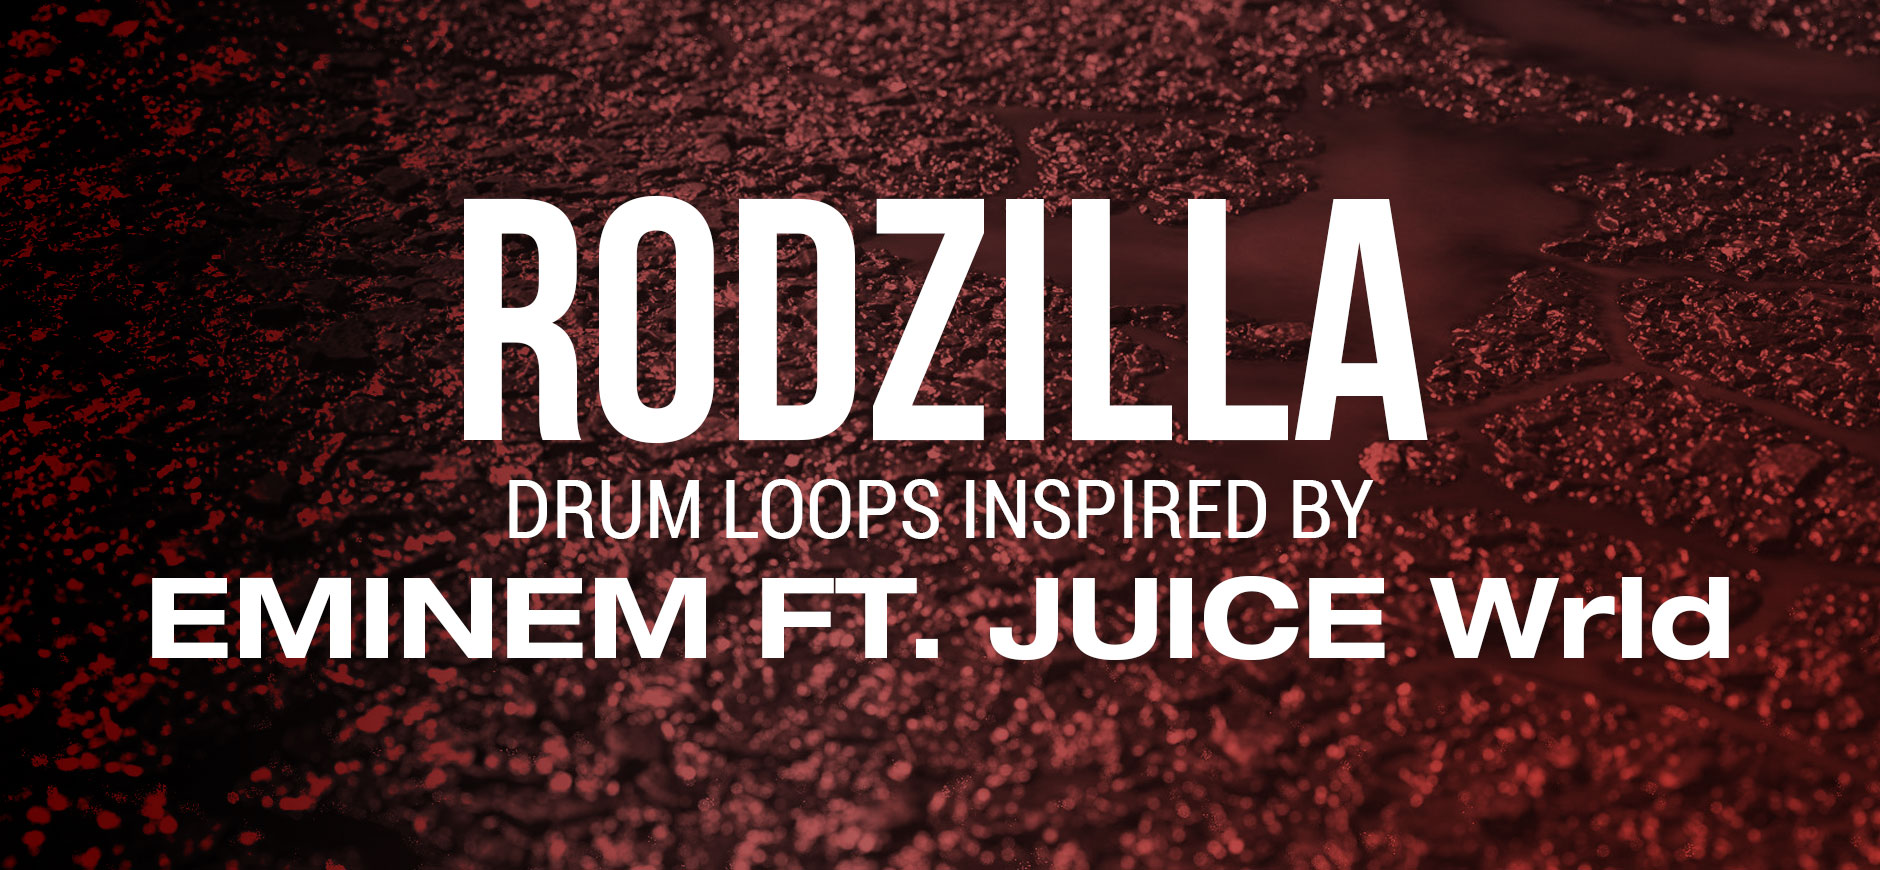 Godzilla Drum Loops Kit Inspirado por Eminem ft. JUICE Wrld